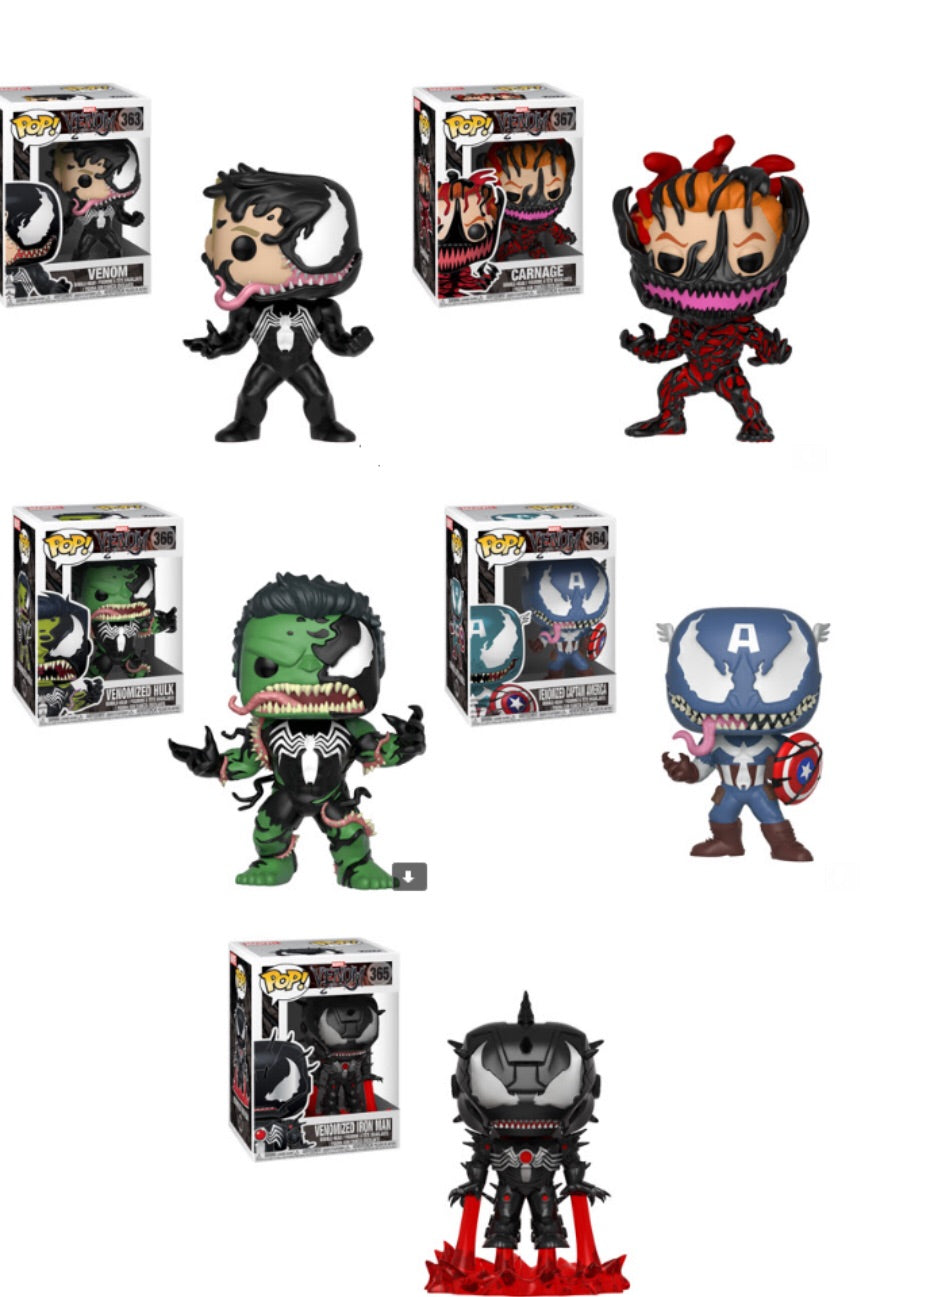 Venom Funko Pop! Complete Set of 5